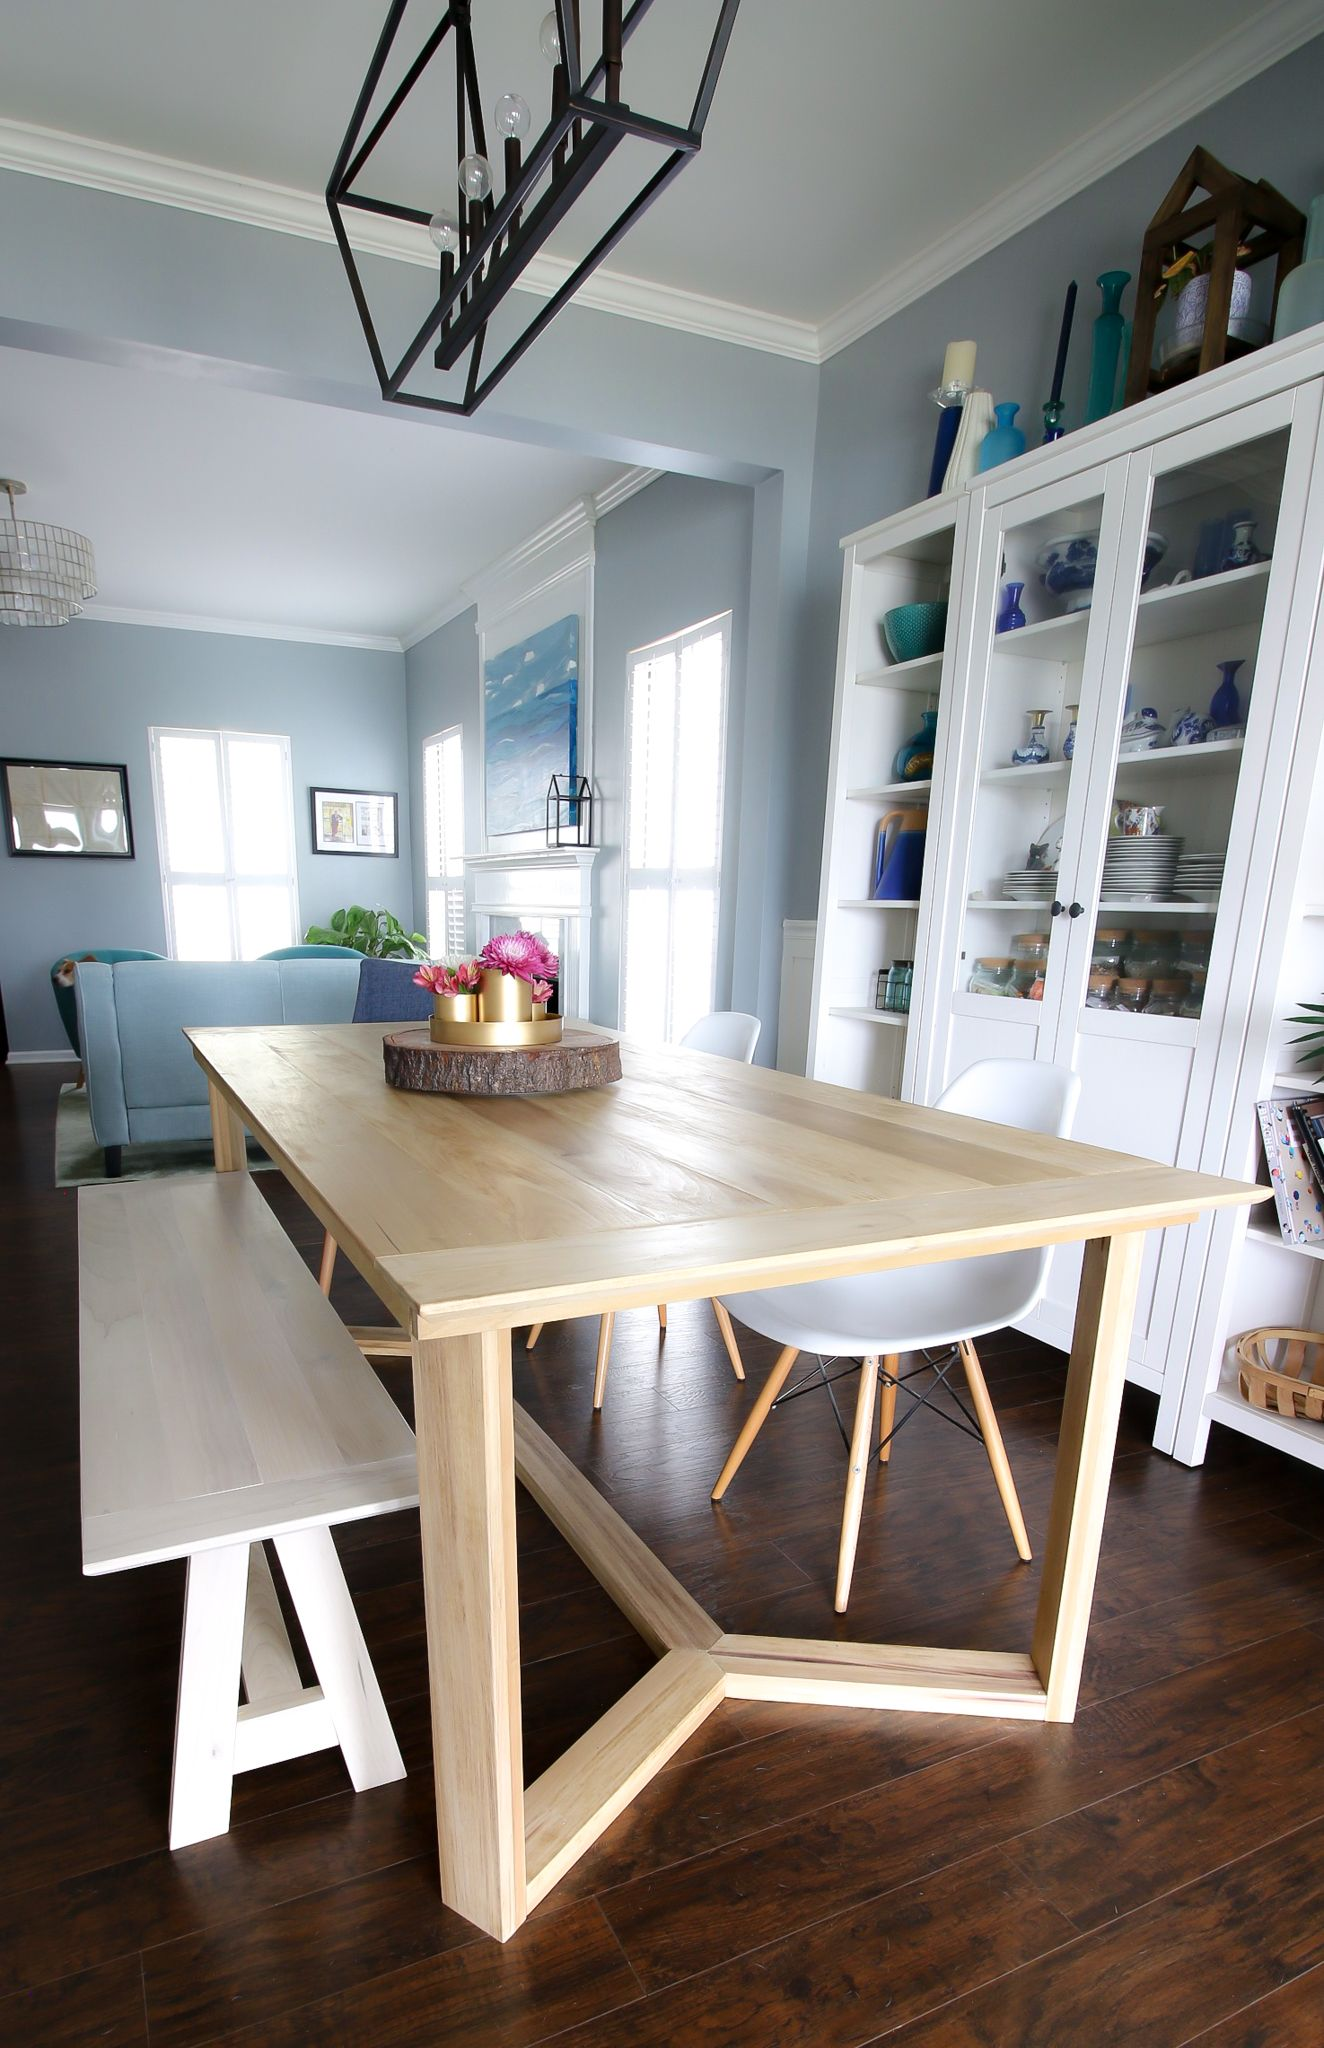 Diy Angled Base Dining Table In 2020 Diy Furniture Easy Wooden